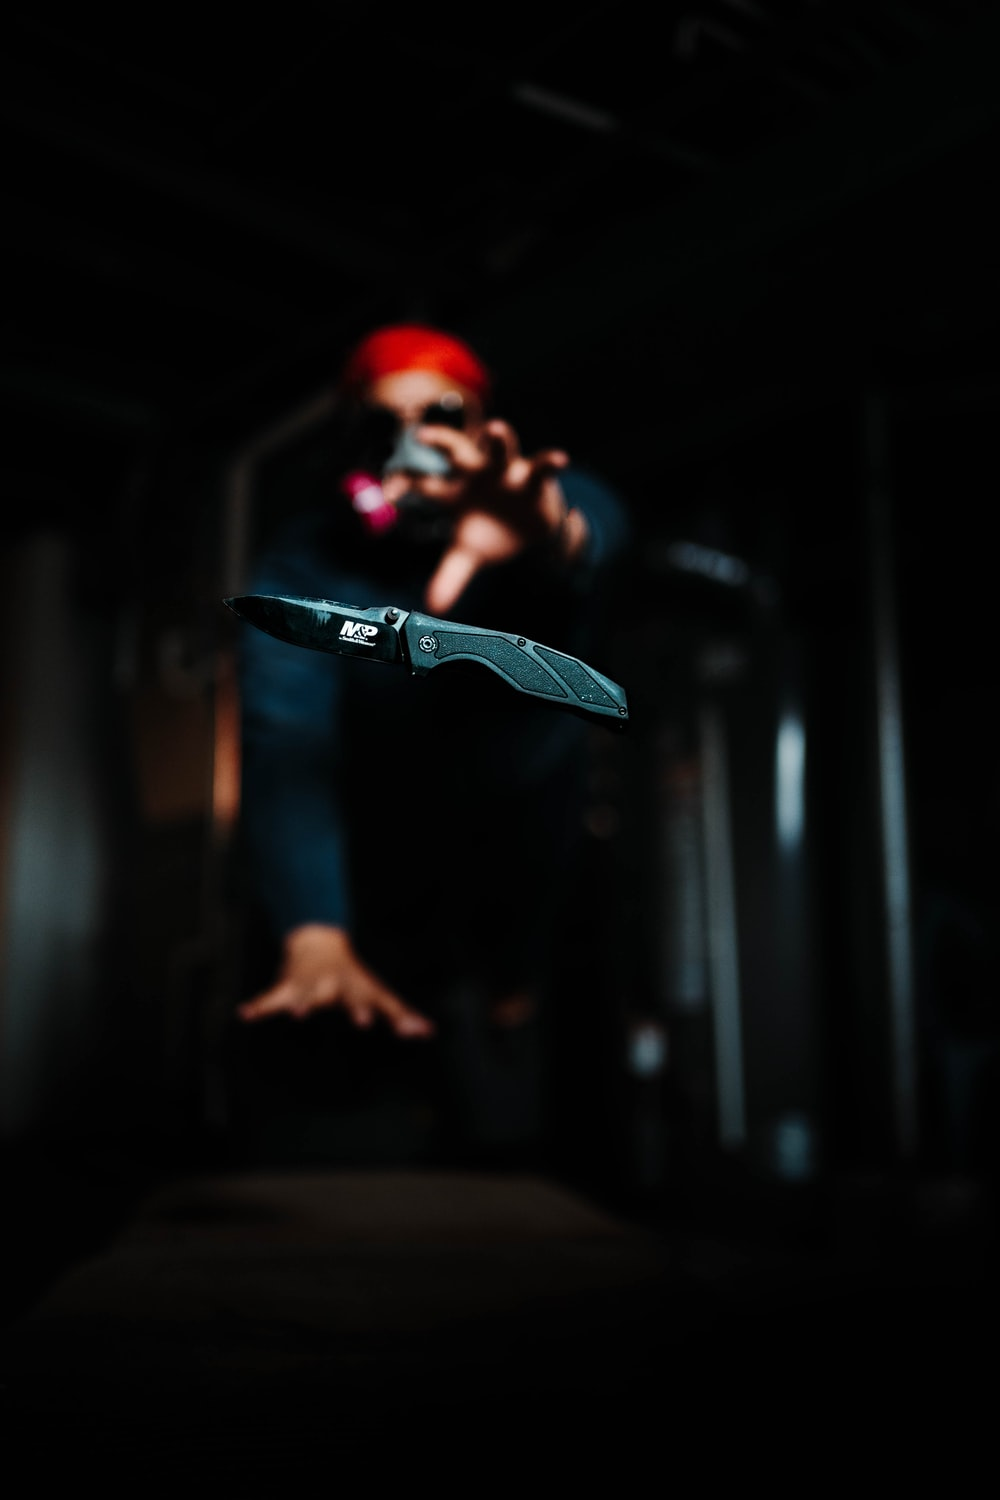 man in black and red mask holding black skateboard